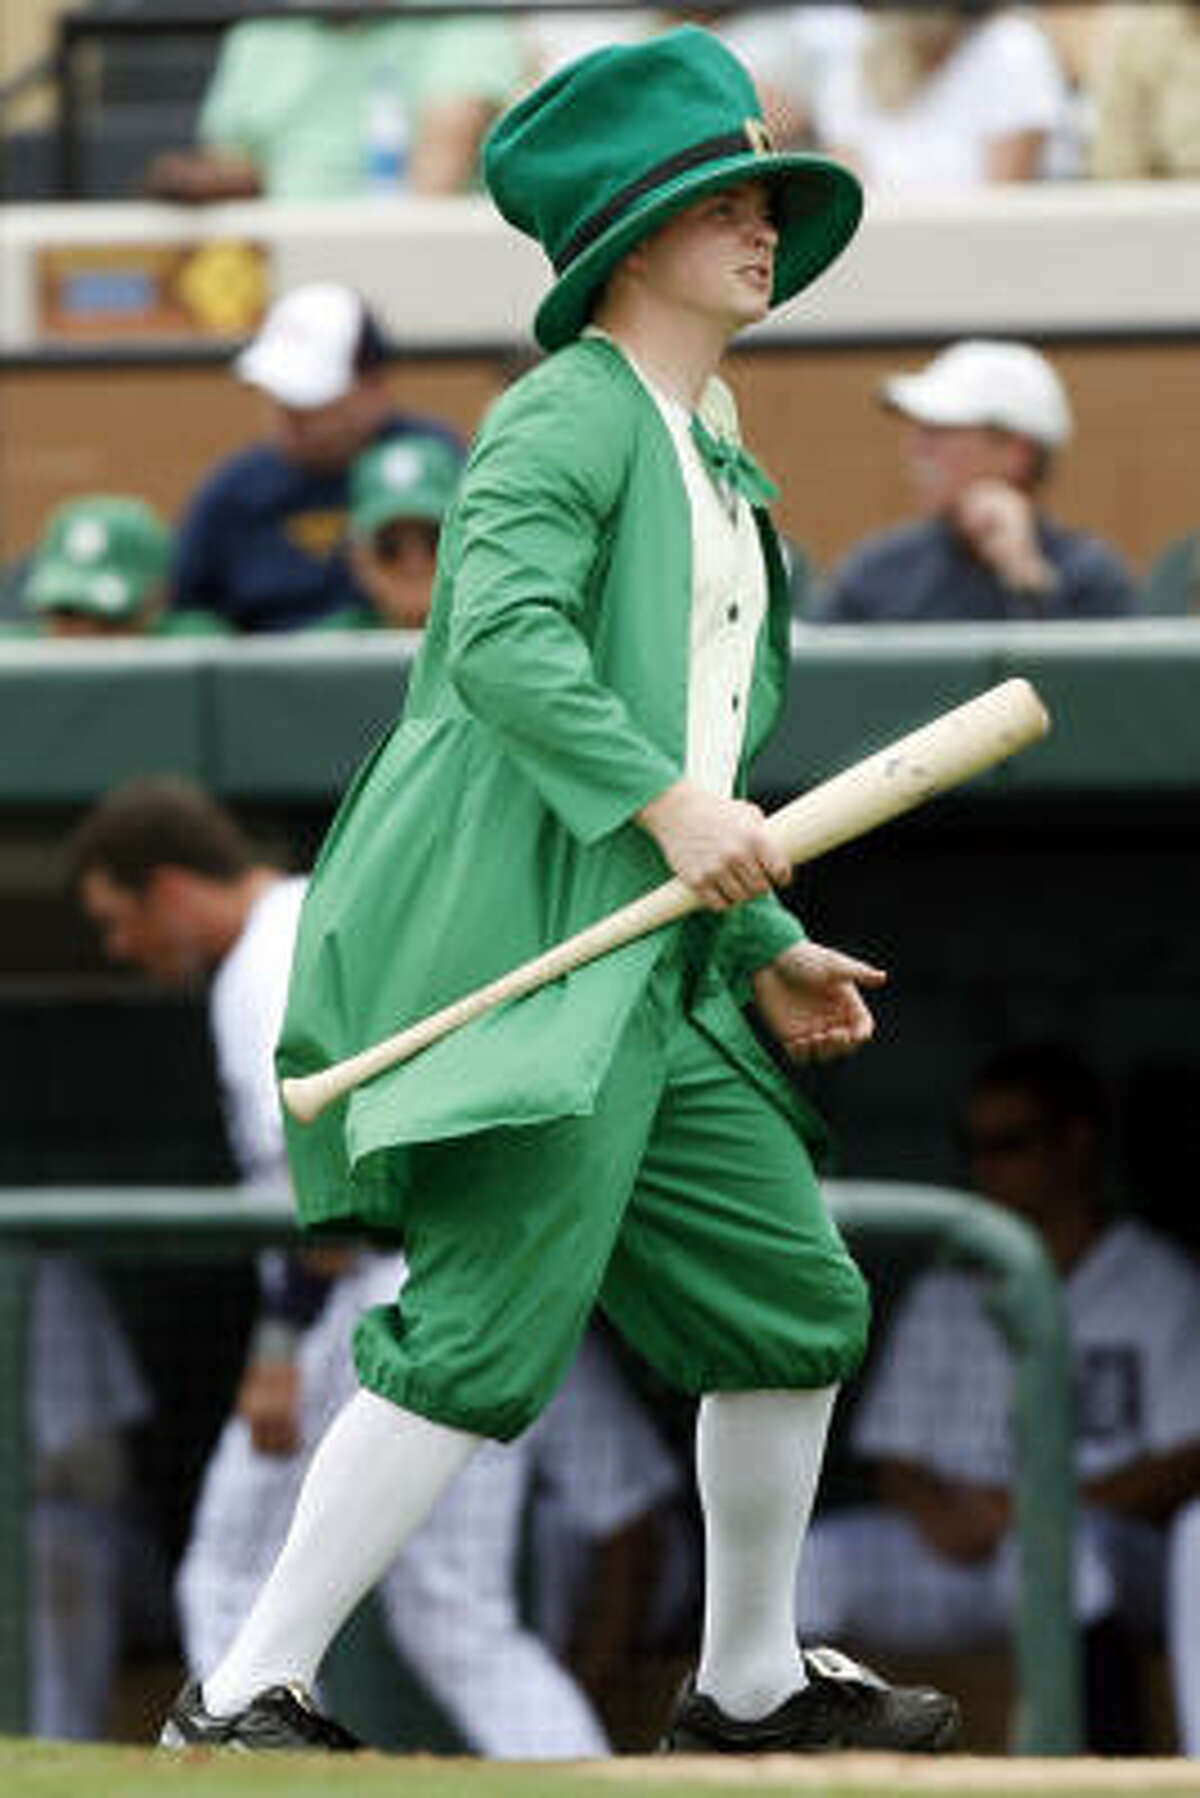 The bat boy, 18-year-old Kyle Dauer of Toledo, Ohio, is dressed as a leprechaun in honor of St. Patrick's Day.